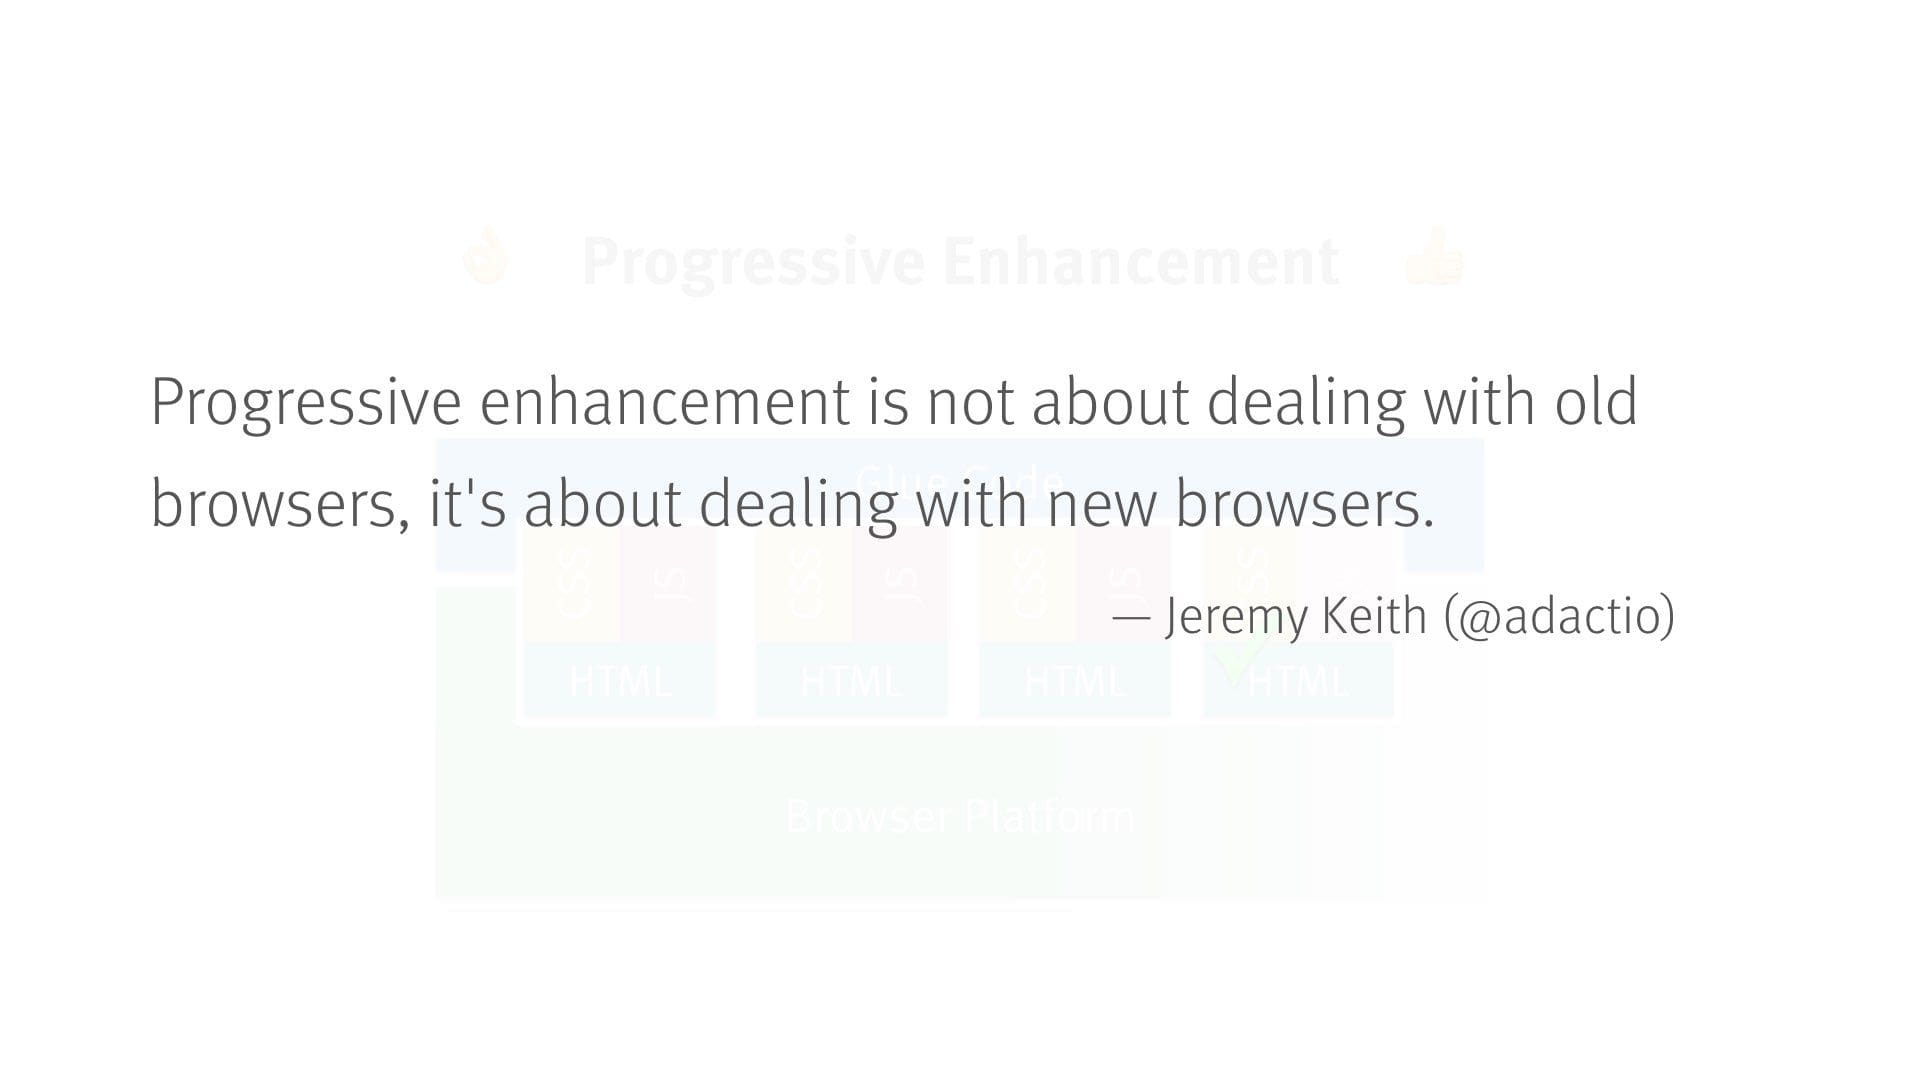 progressive enhancement and browsers